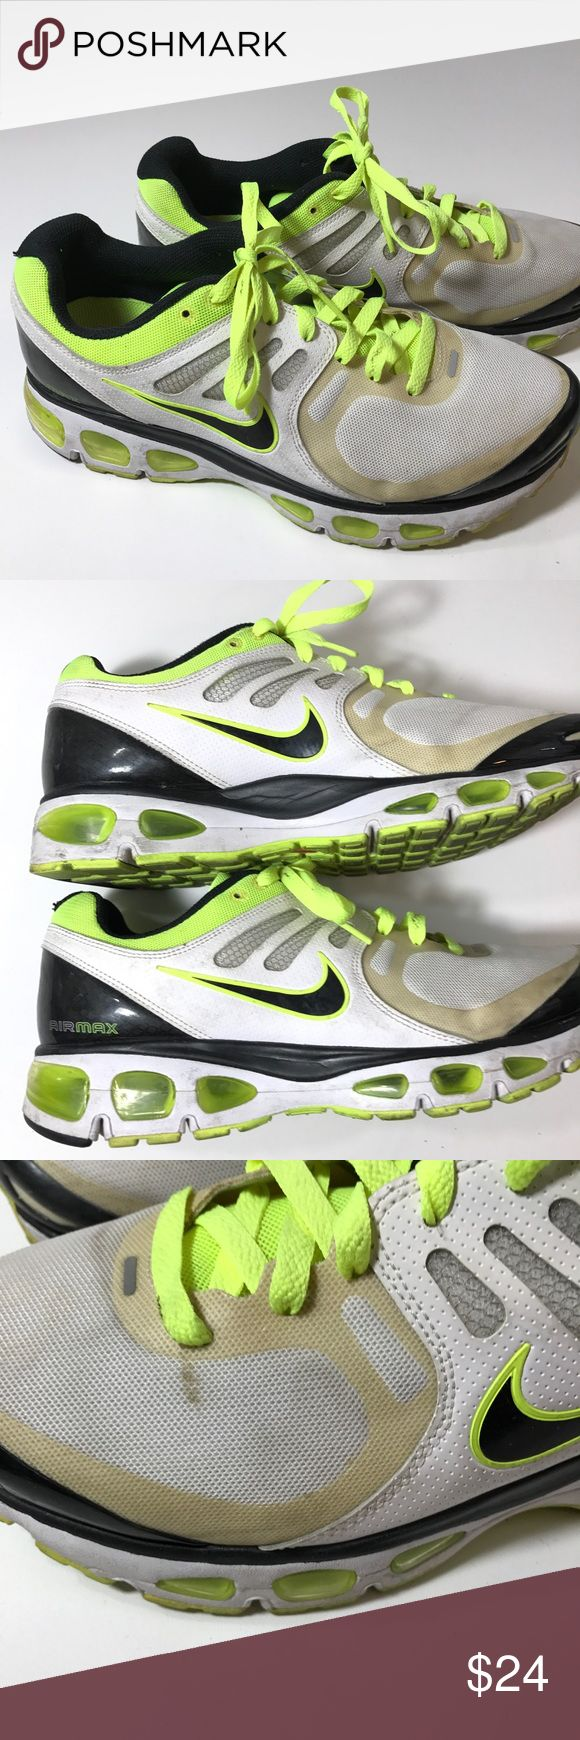 NIKE AIR MAX Tailwind 2 MENS SHOE SNEAKER SIZE 8.5 Has some wear on the top and spots please see photos for close up and overall condition   Mens 8.5 Nike Shoes Sneakers